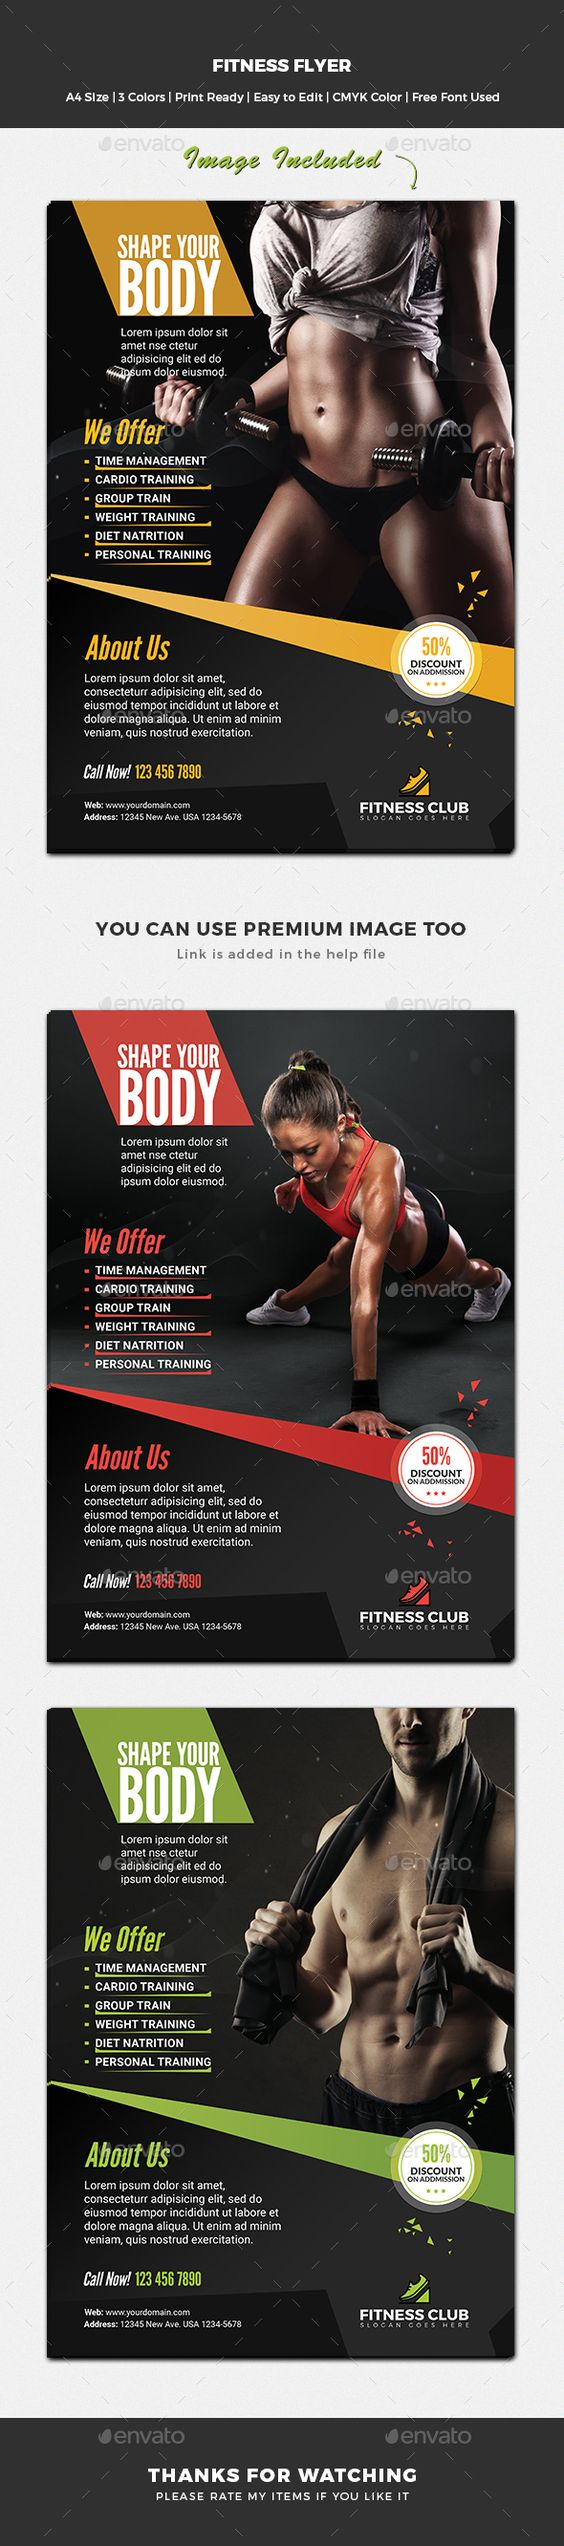 Fitness Flyer Template PSD. Download here: https://graphicriver.net/item/fitness-flyer/17493816?ref=ksioks